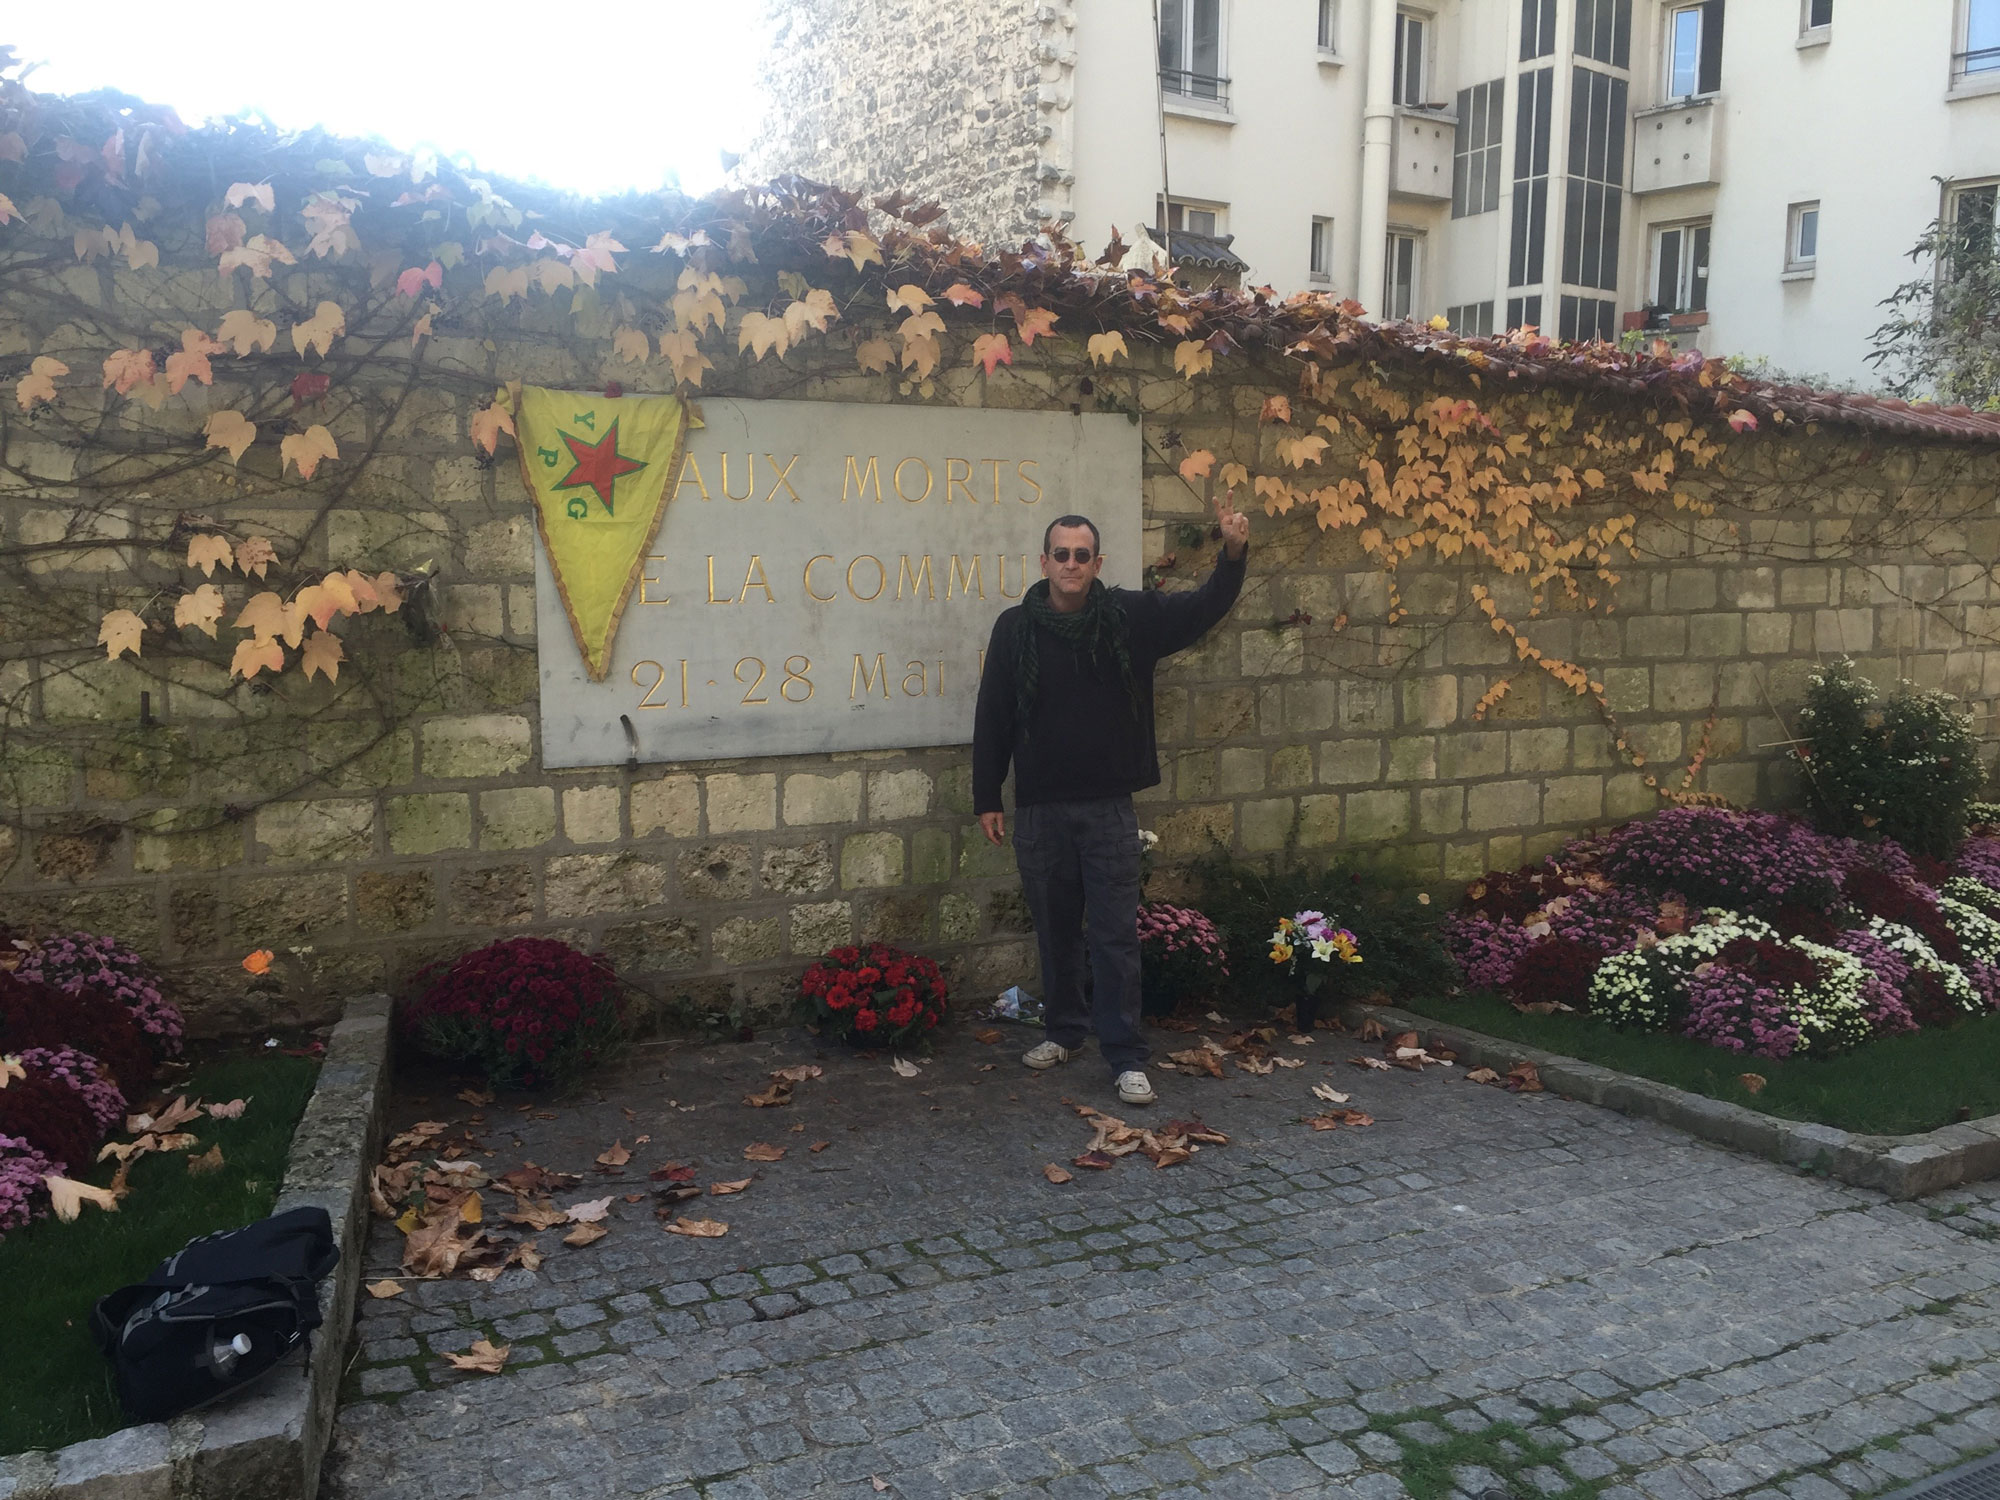 Paul Z. Simons at the Cimetière du Père Lachaise in Paris where the last participants in the Paris Commune were executed, displaying a YPG flag.